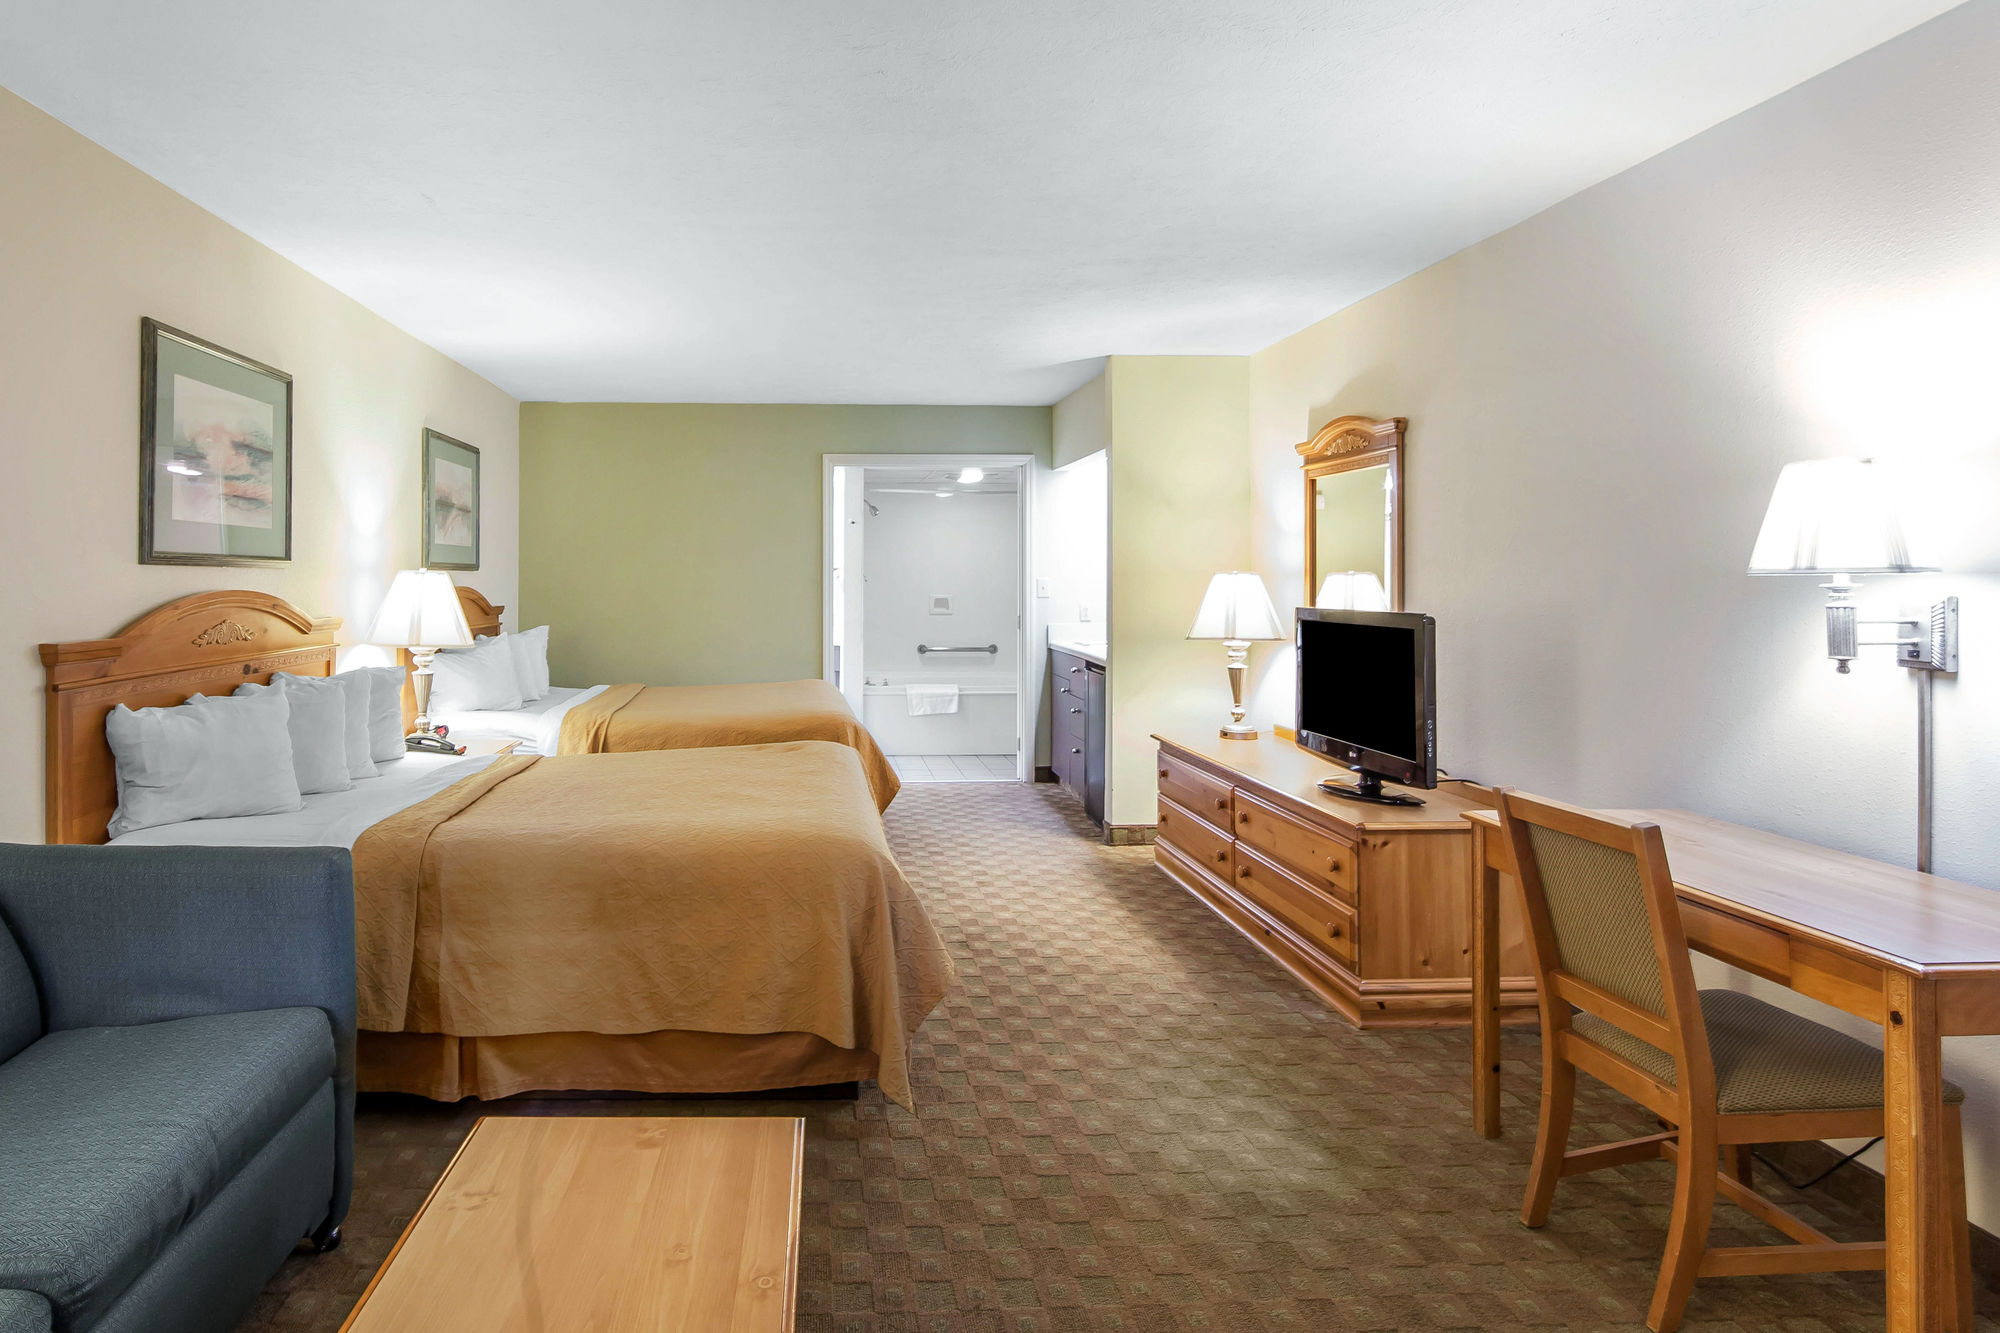 Quality Inn And Suites Dollywood in Pigeon Forge, TN